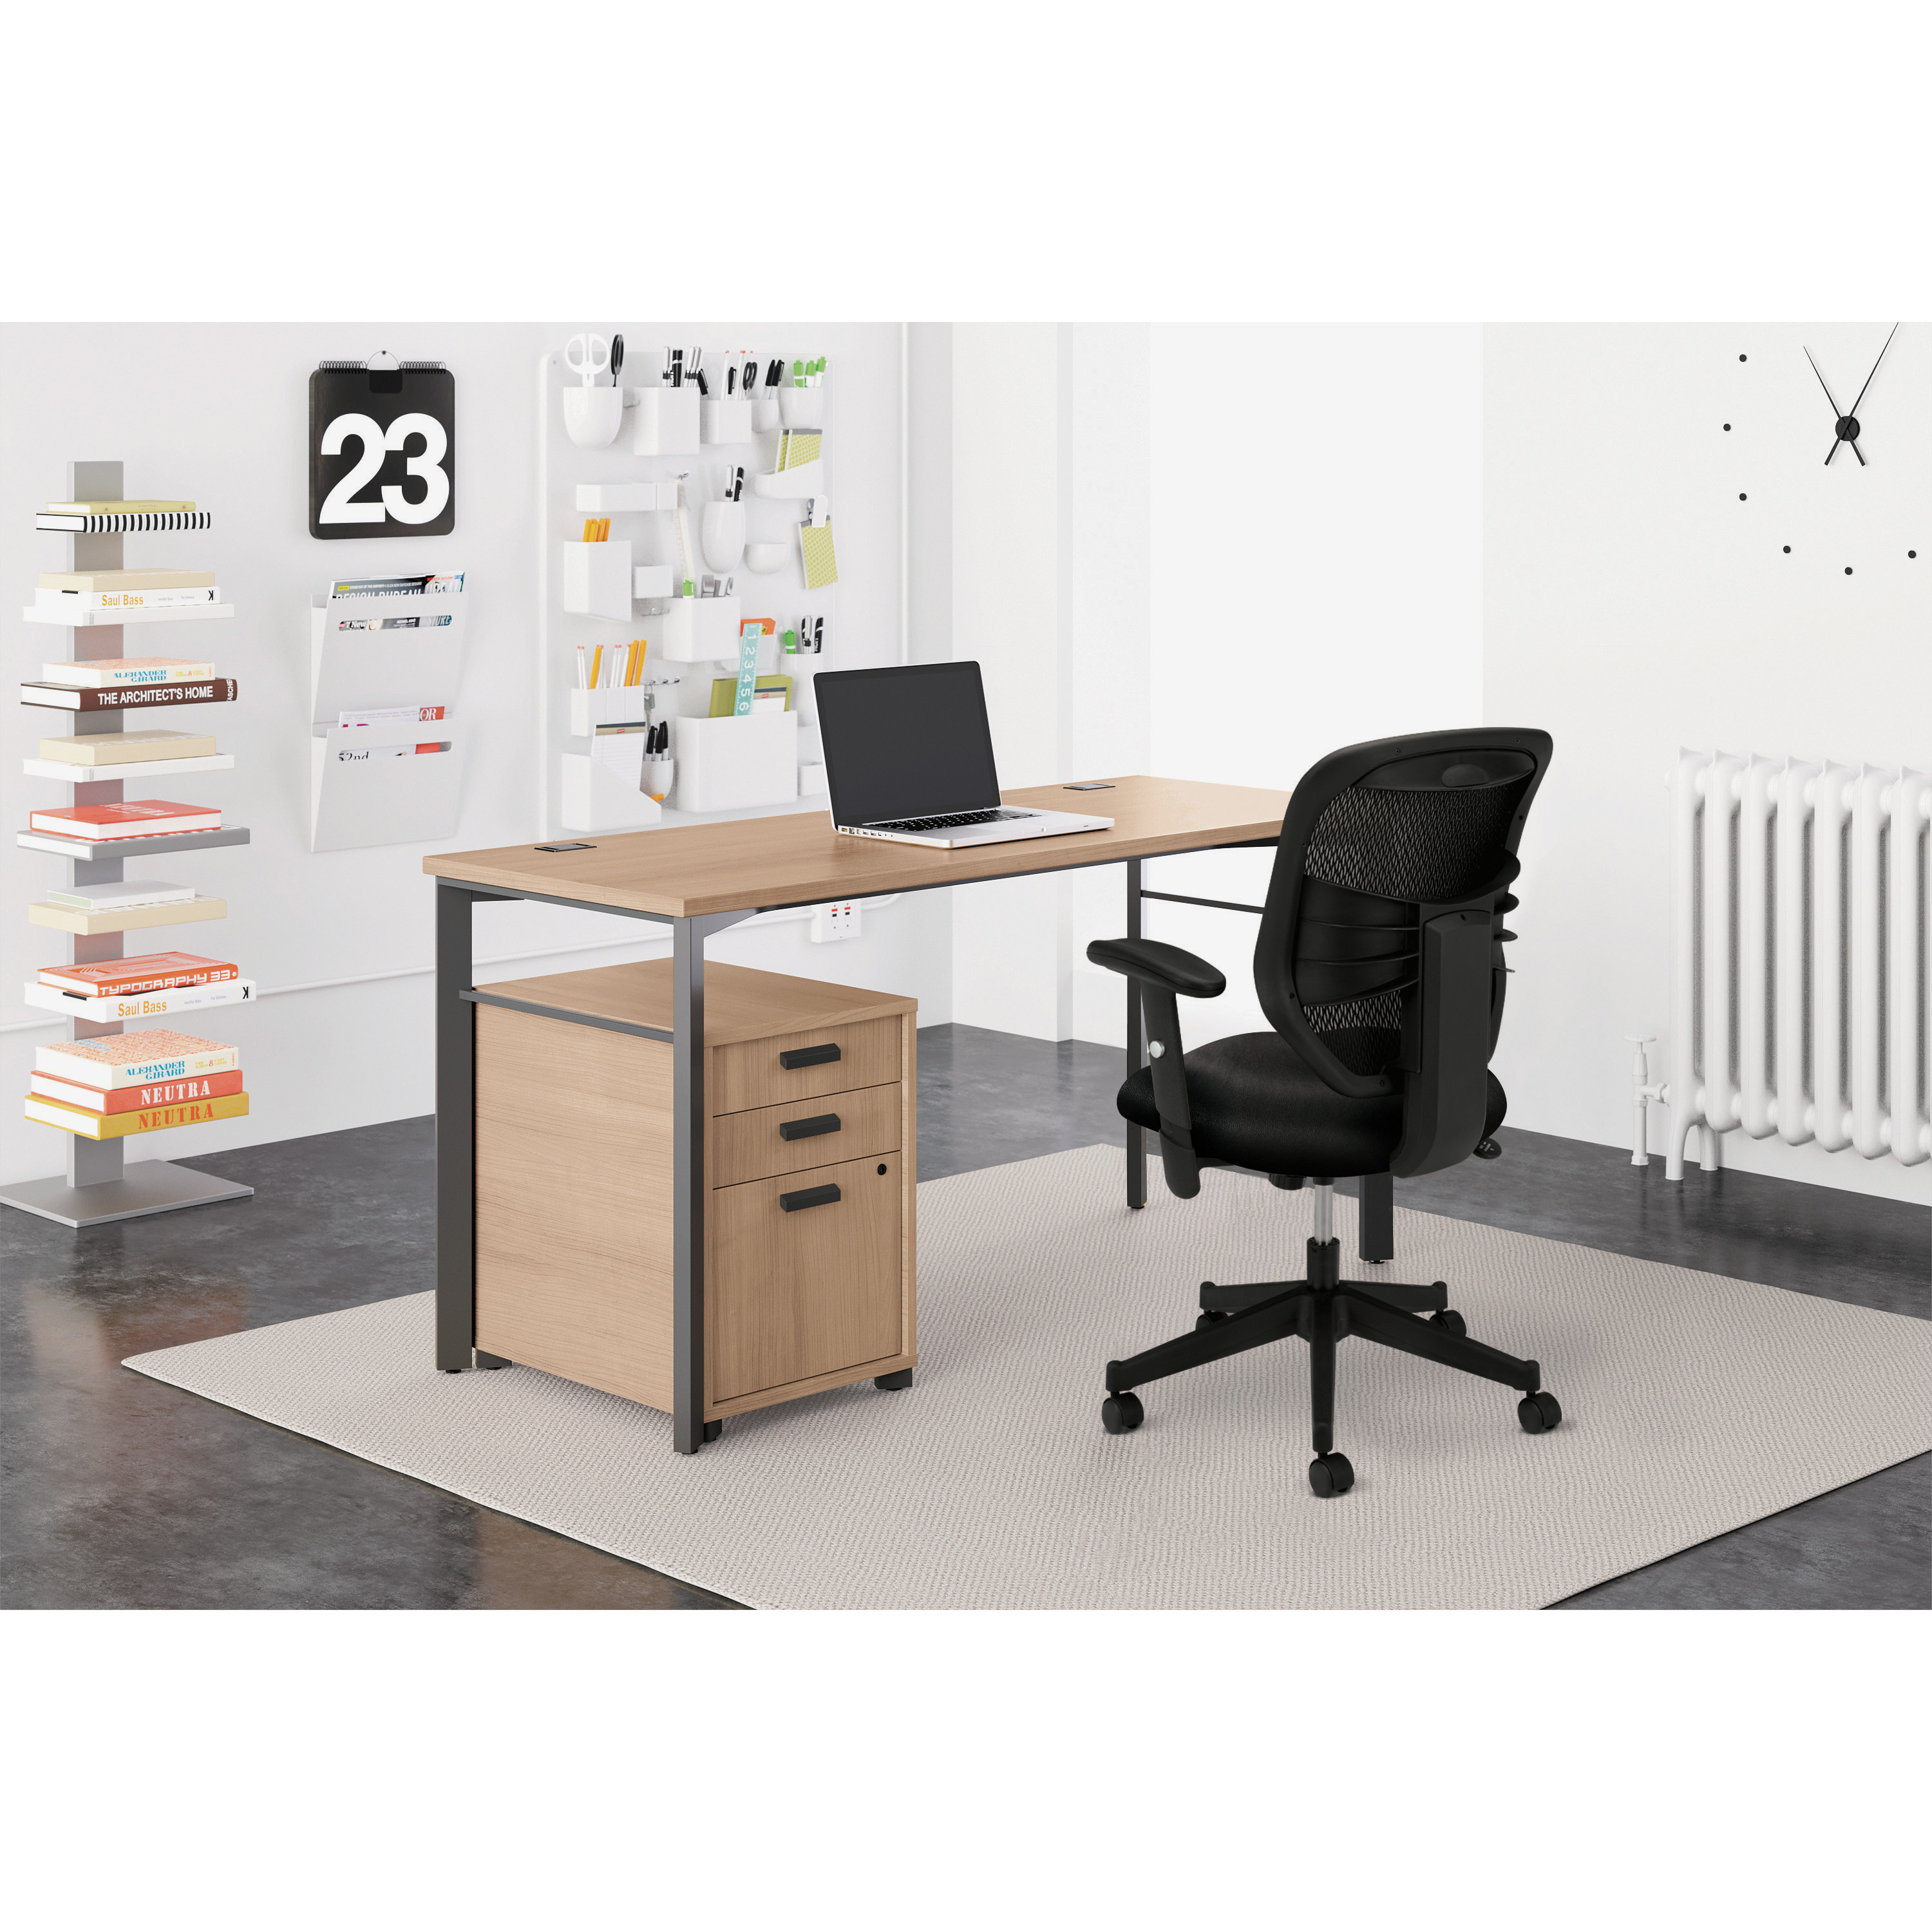 Comfort Chair Price Upscale Comfort At And Affordable Price Craft Office Systems